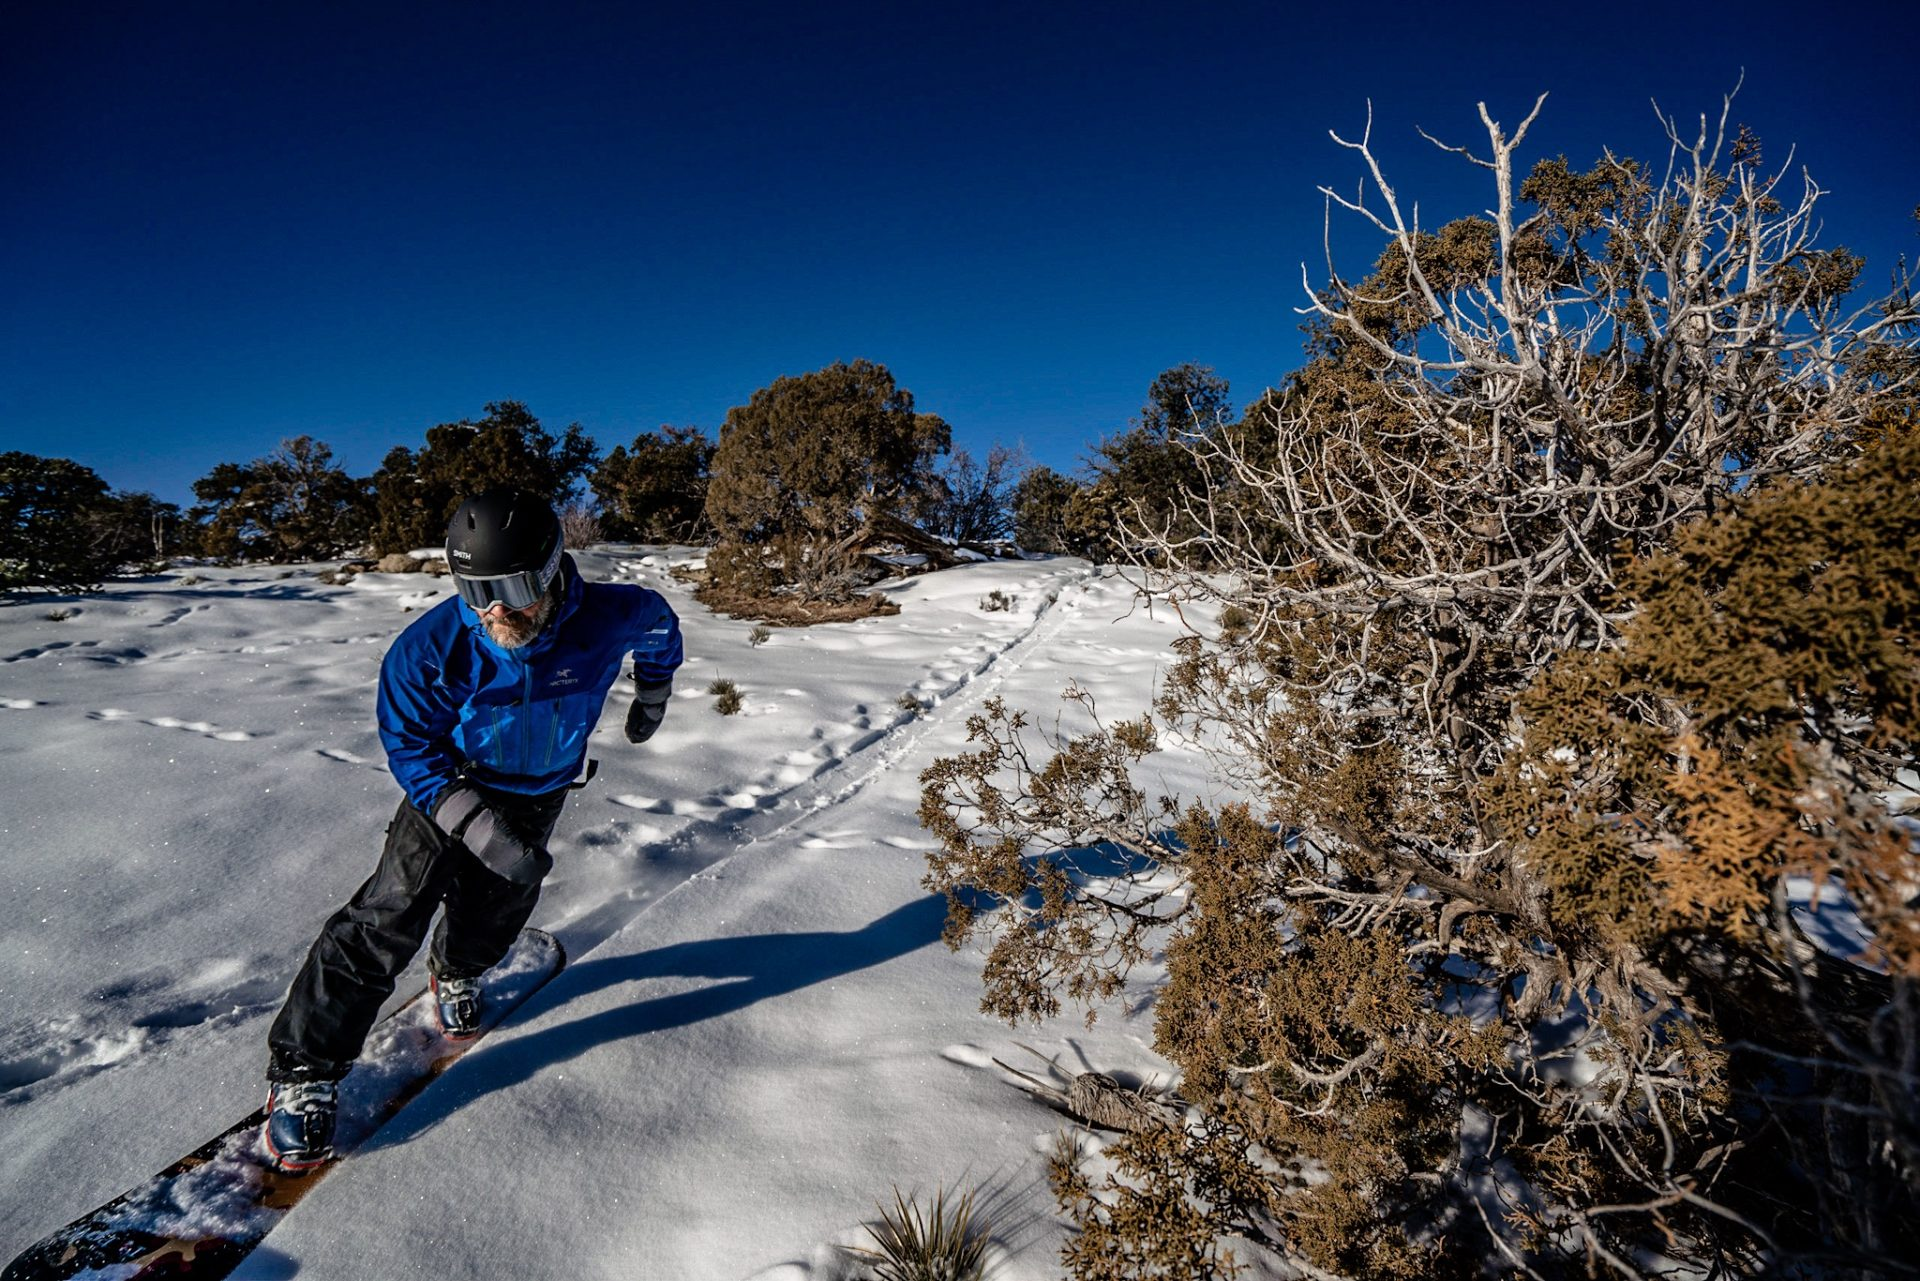 In hardboots on a snowboard carving through small juniper trees in the desert near Grand Junction, Colorado